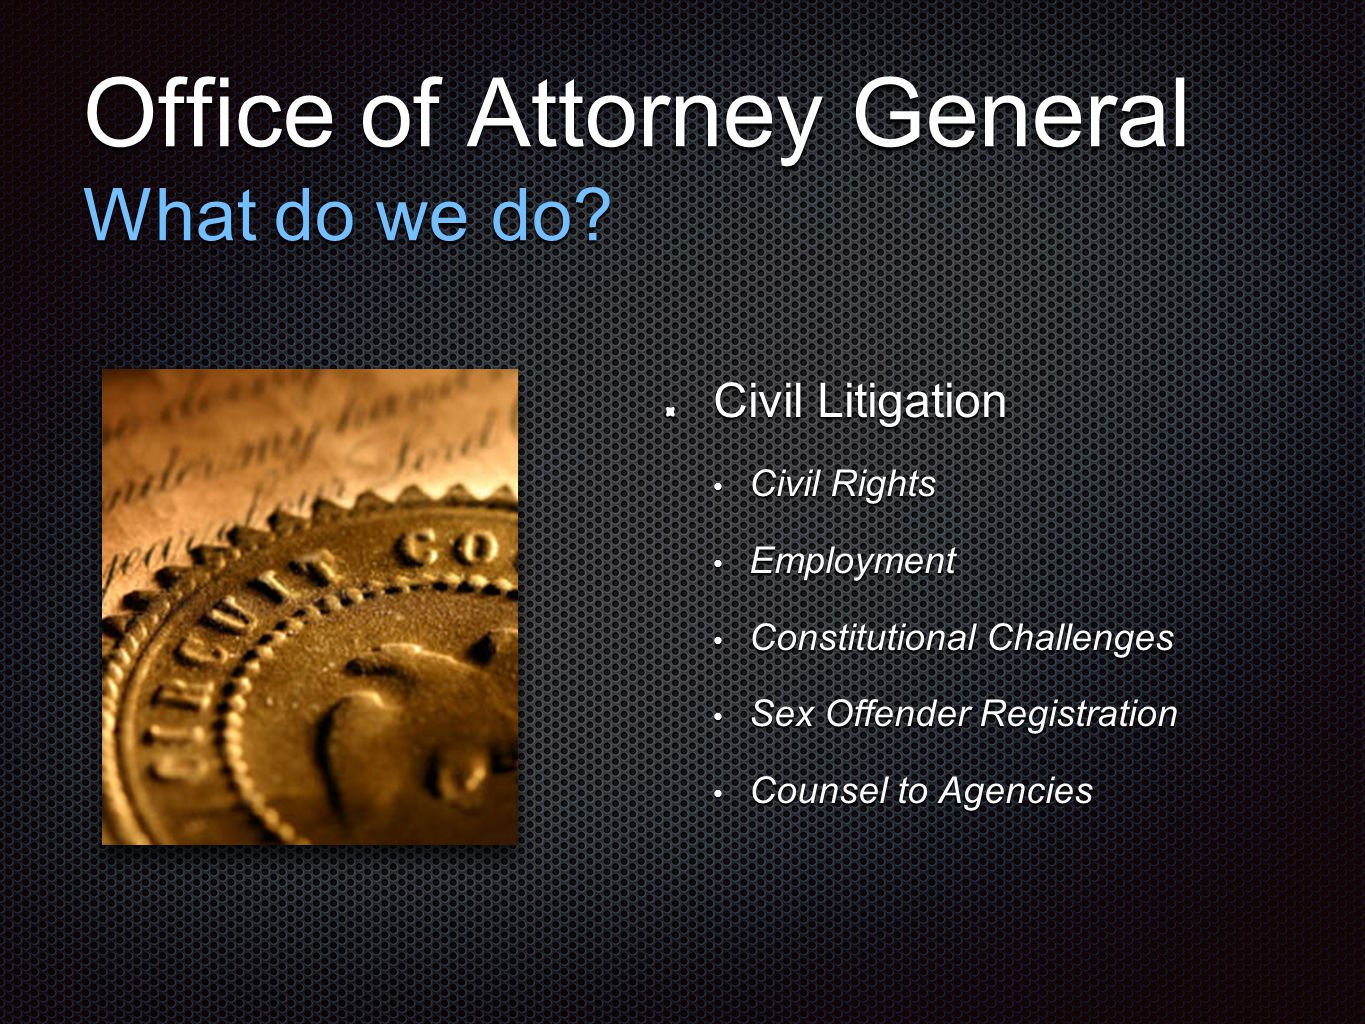 Office of Attorney General What do we do? Civil Litigation Civil Rights Civil Rights Employment Employment Constitutional Challenges Constitutional Ch